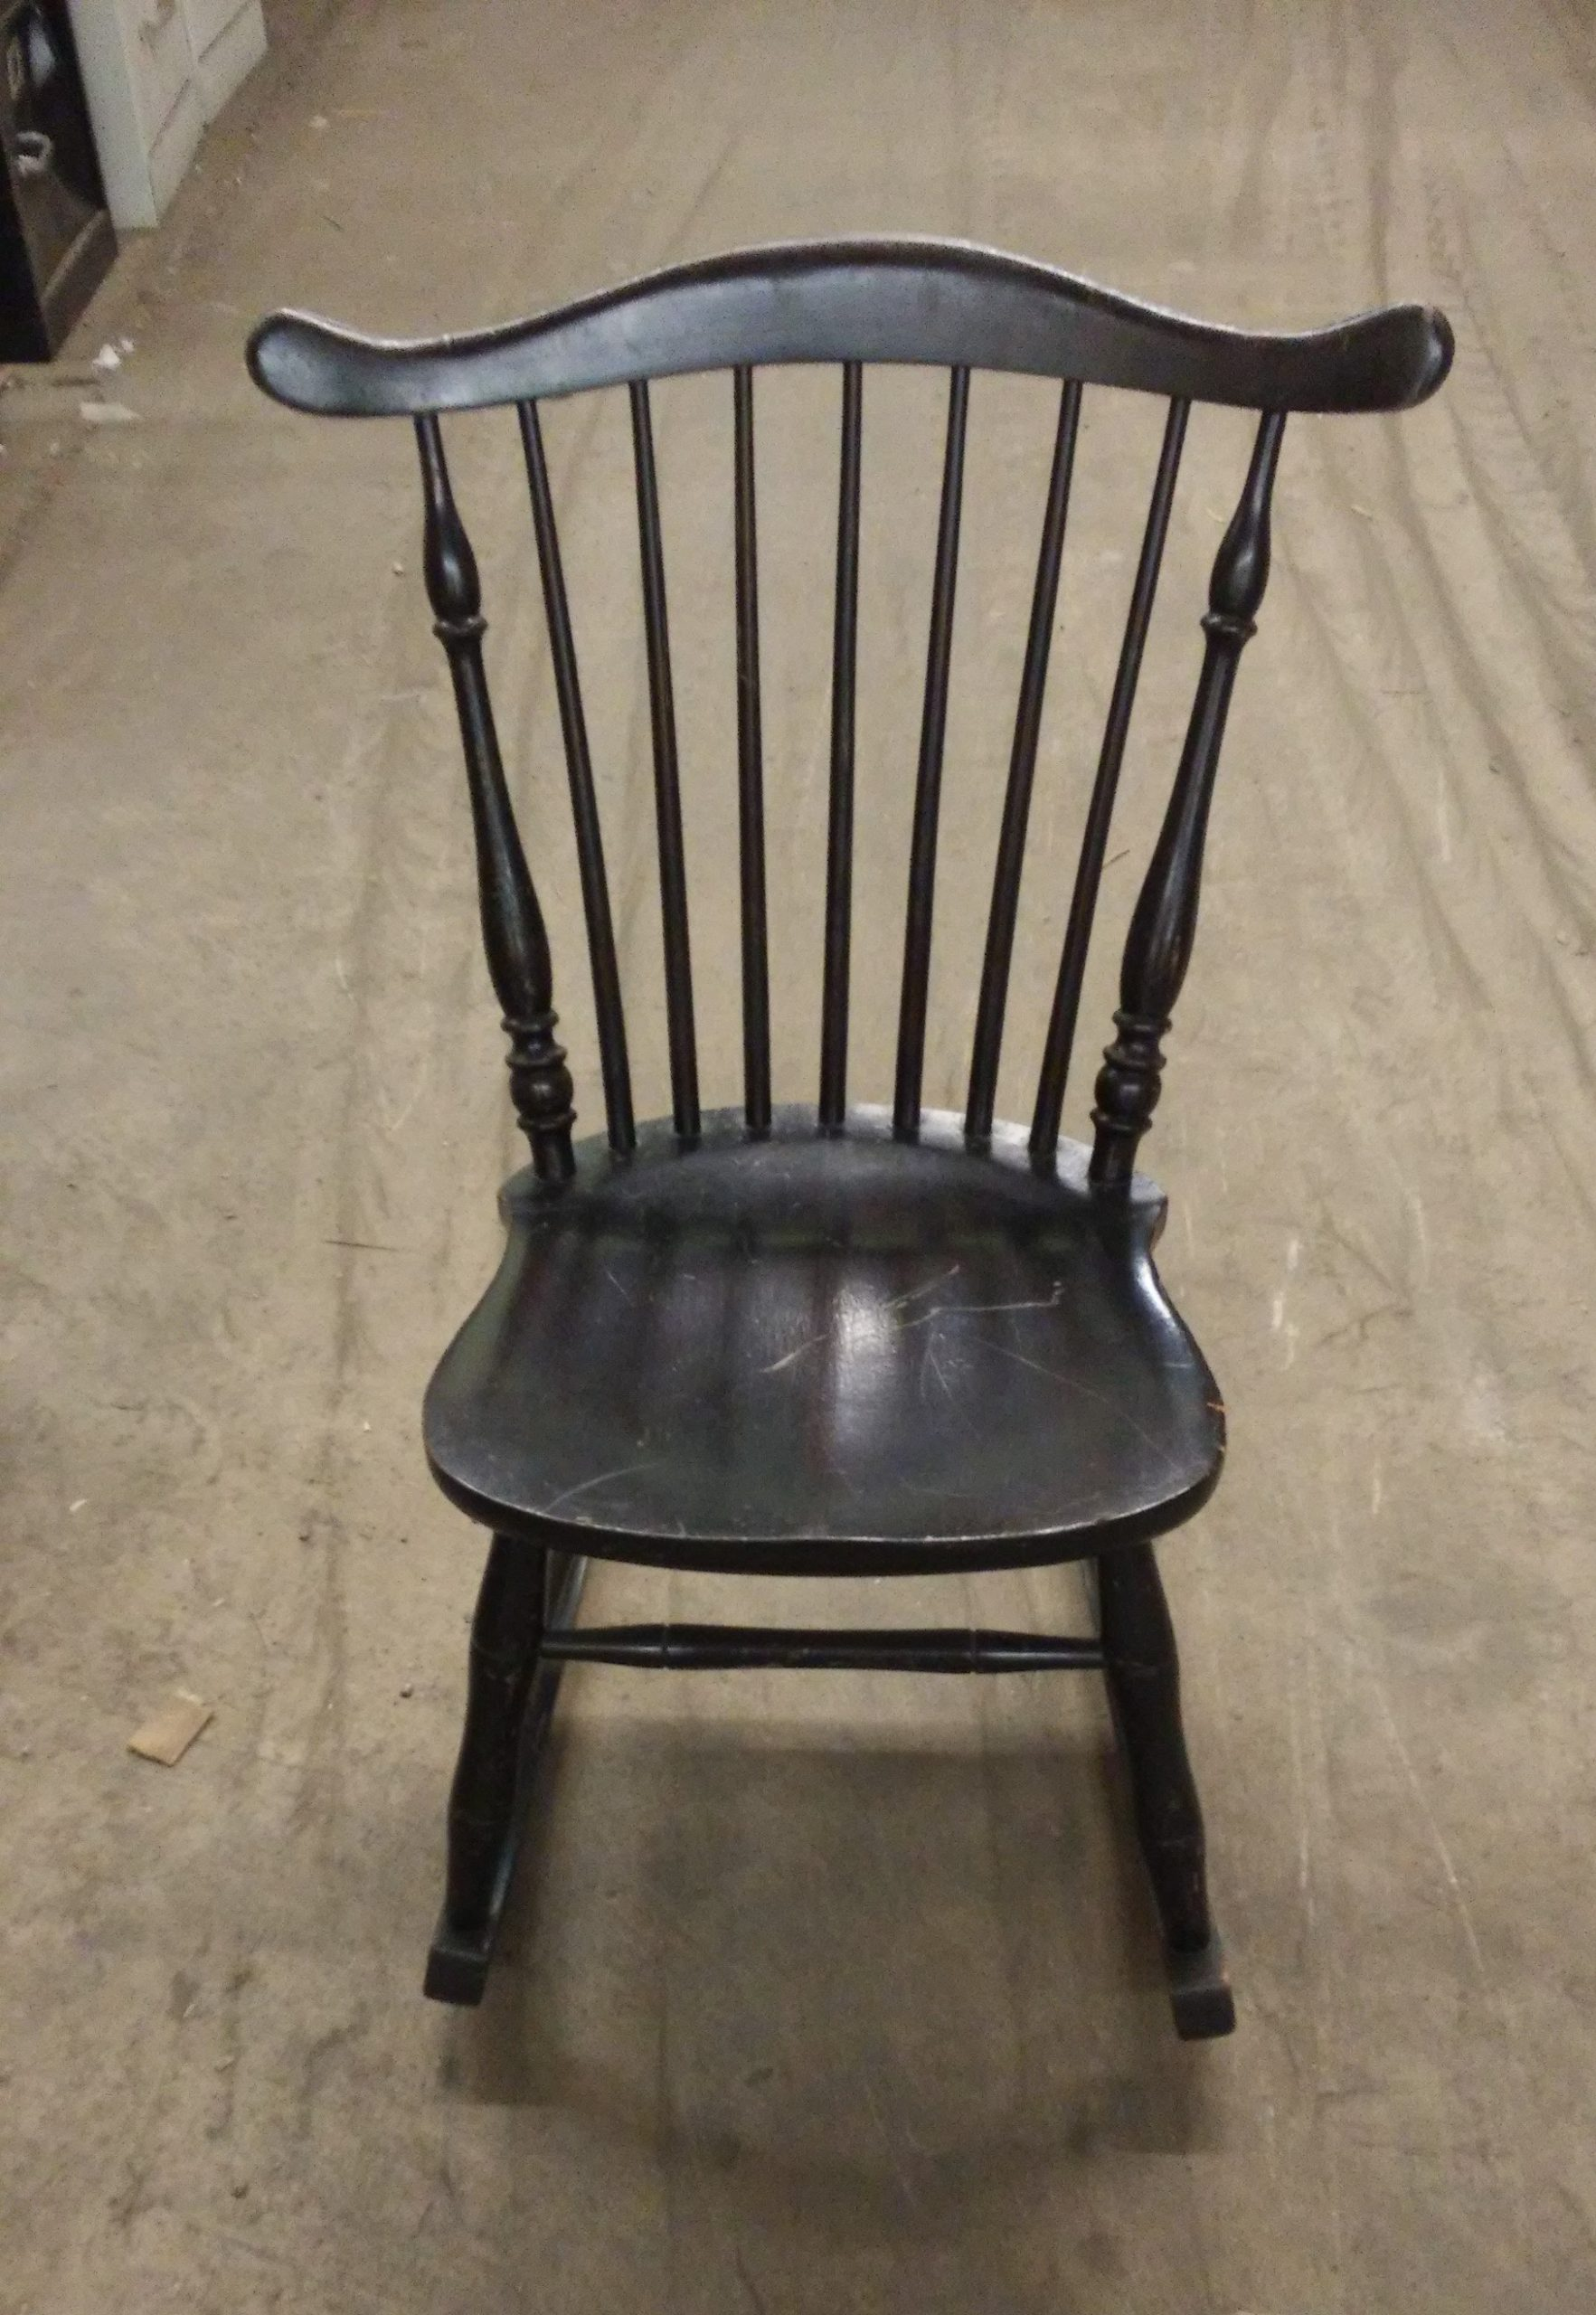 Kids' Antique Wooden Rocker/ Rocking Chair For Sale - Used